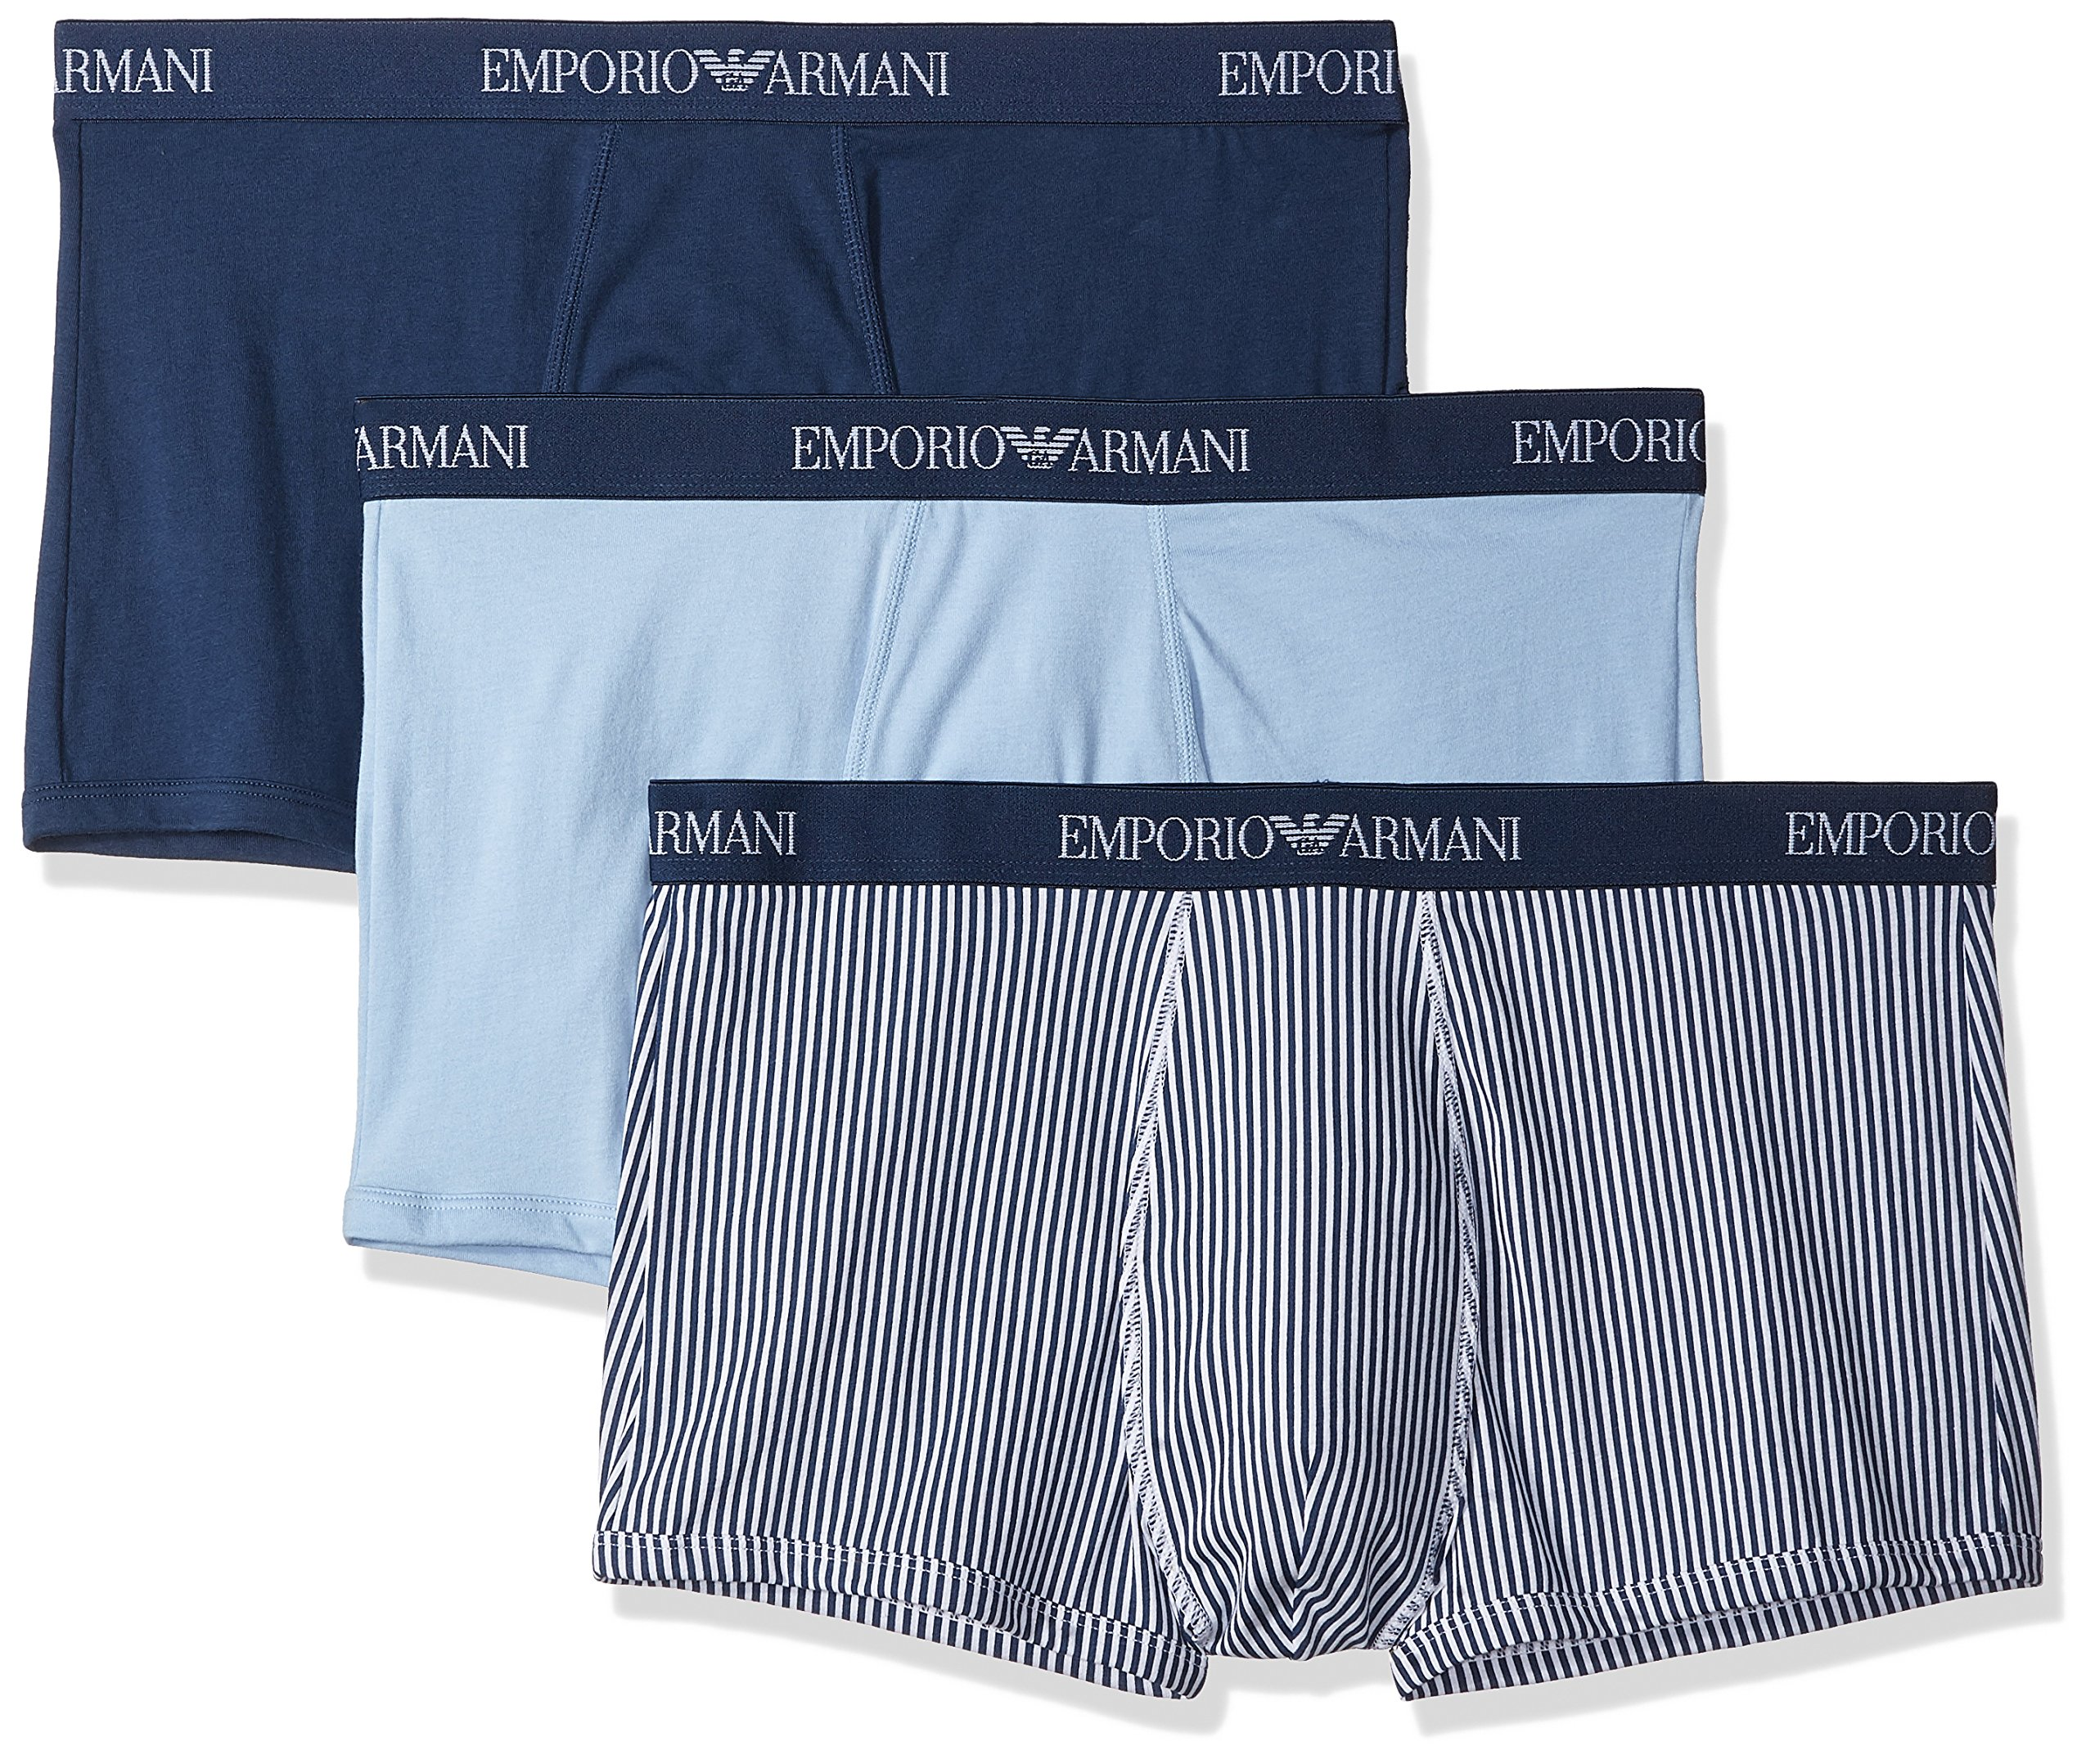 Emporio Armani Men's Pure Cotton 3-Pack Trunk, Stone Blue/Printed Stone Blue/Light Blue, Large